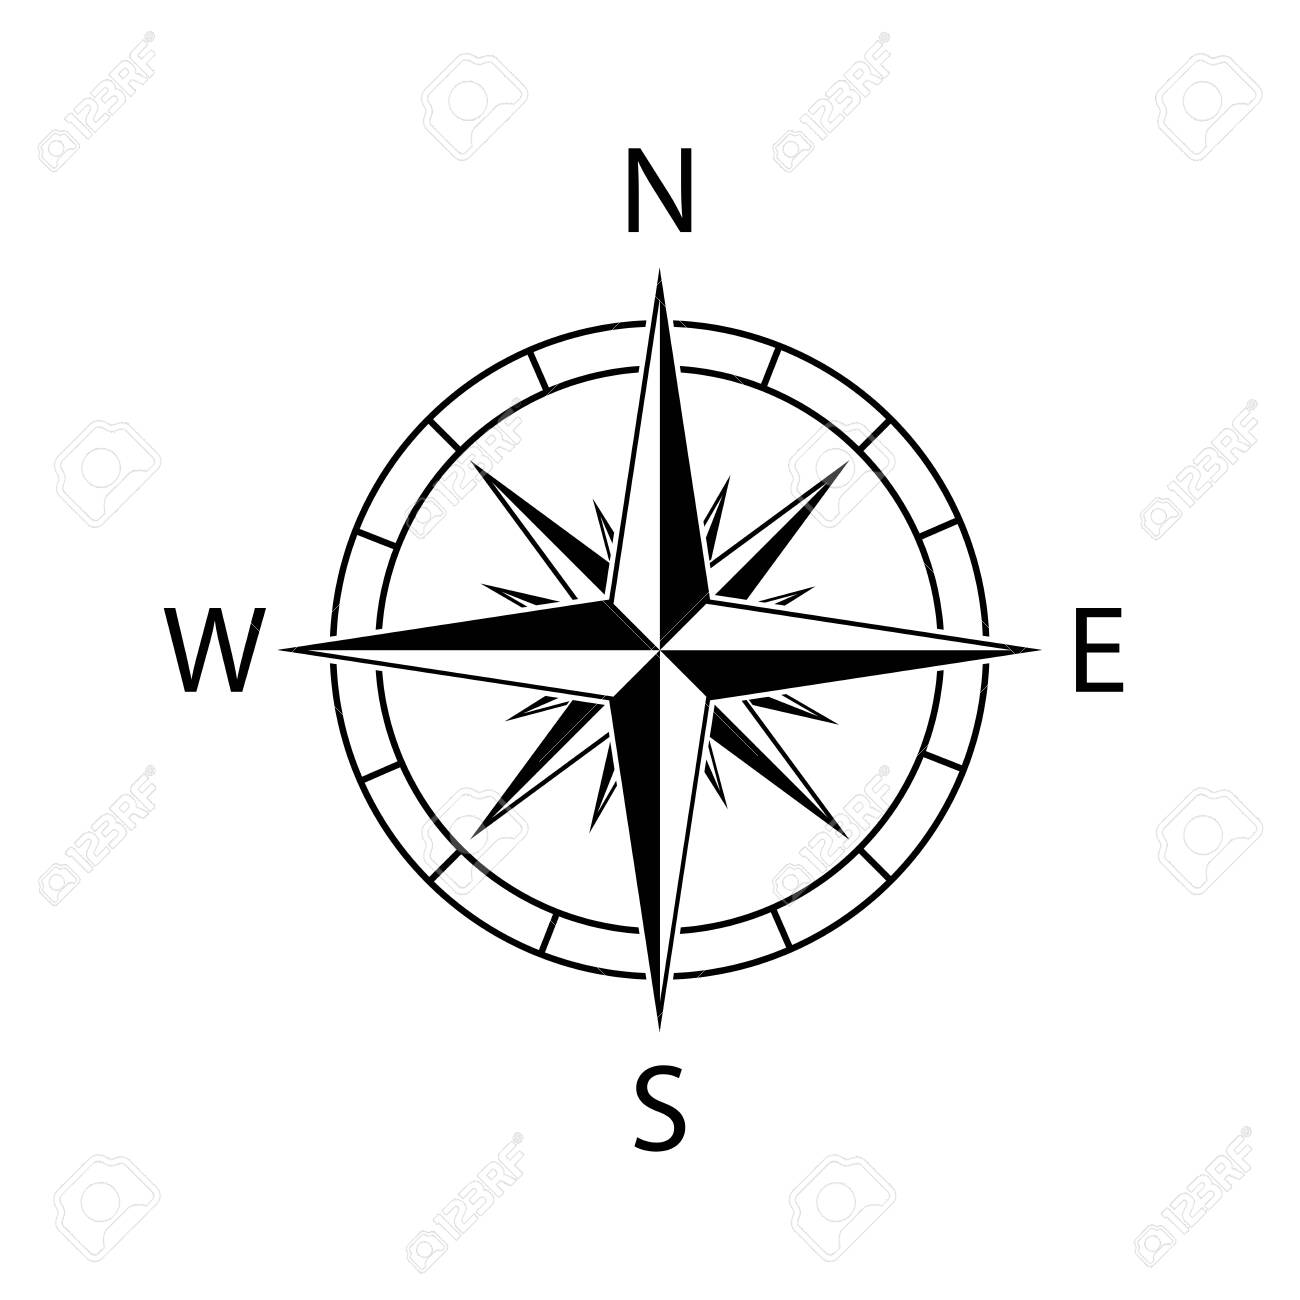 compass icon wind map north west vector illustration - 148432328